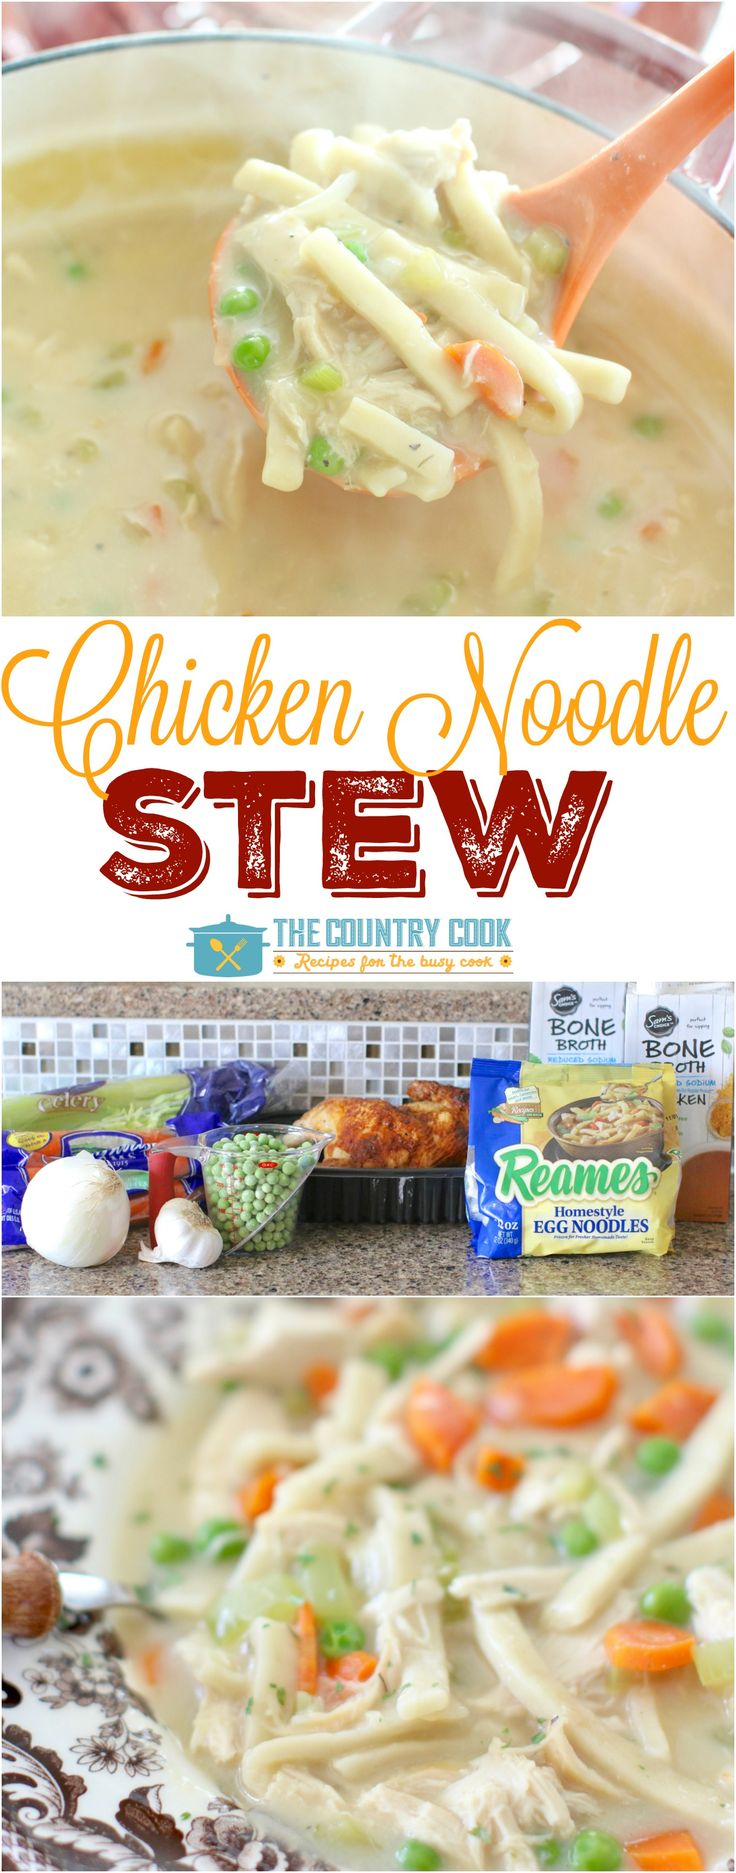 Thick and creamy chicken noodle stew recipe from The Country Cook with easy and yummy Reames homestyle egg noodles! #Reames #HomemadeGoodness #ad